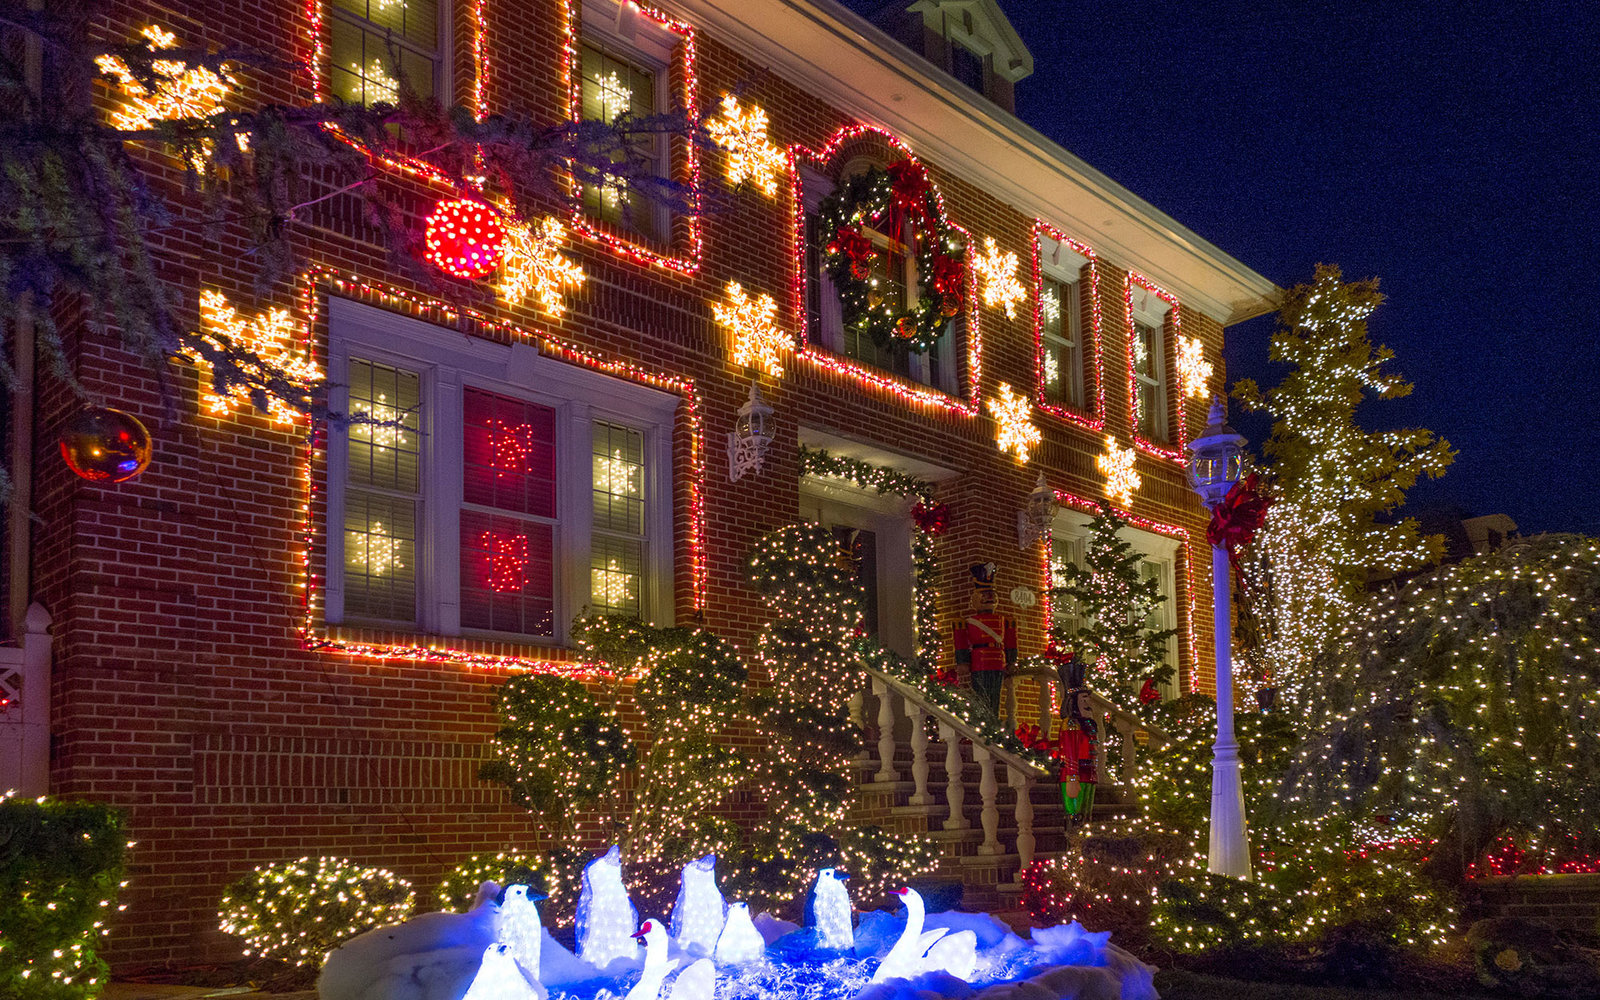 DWAKRX Christmas lights in Brooklyn New York